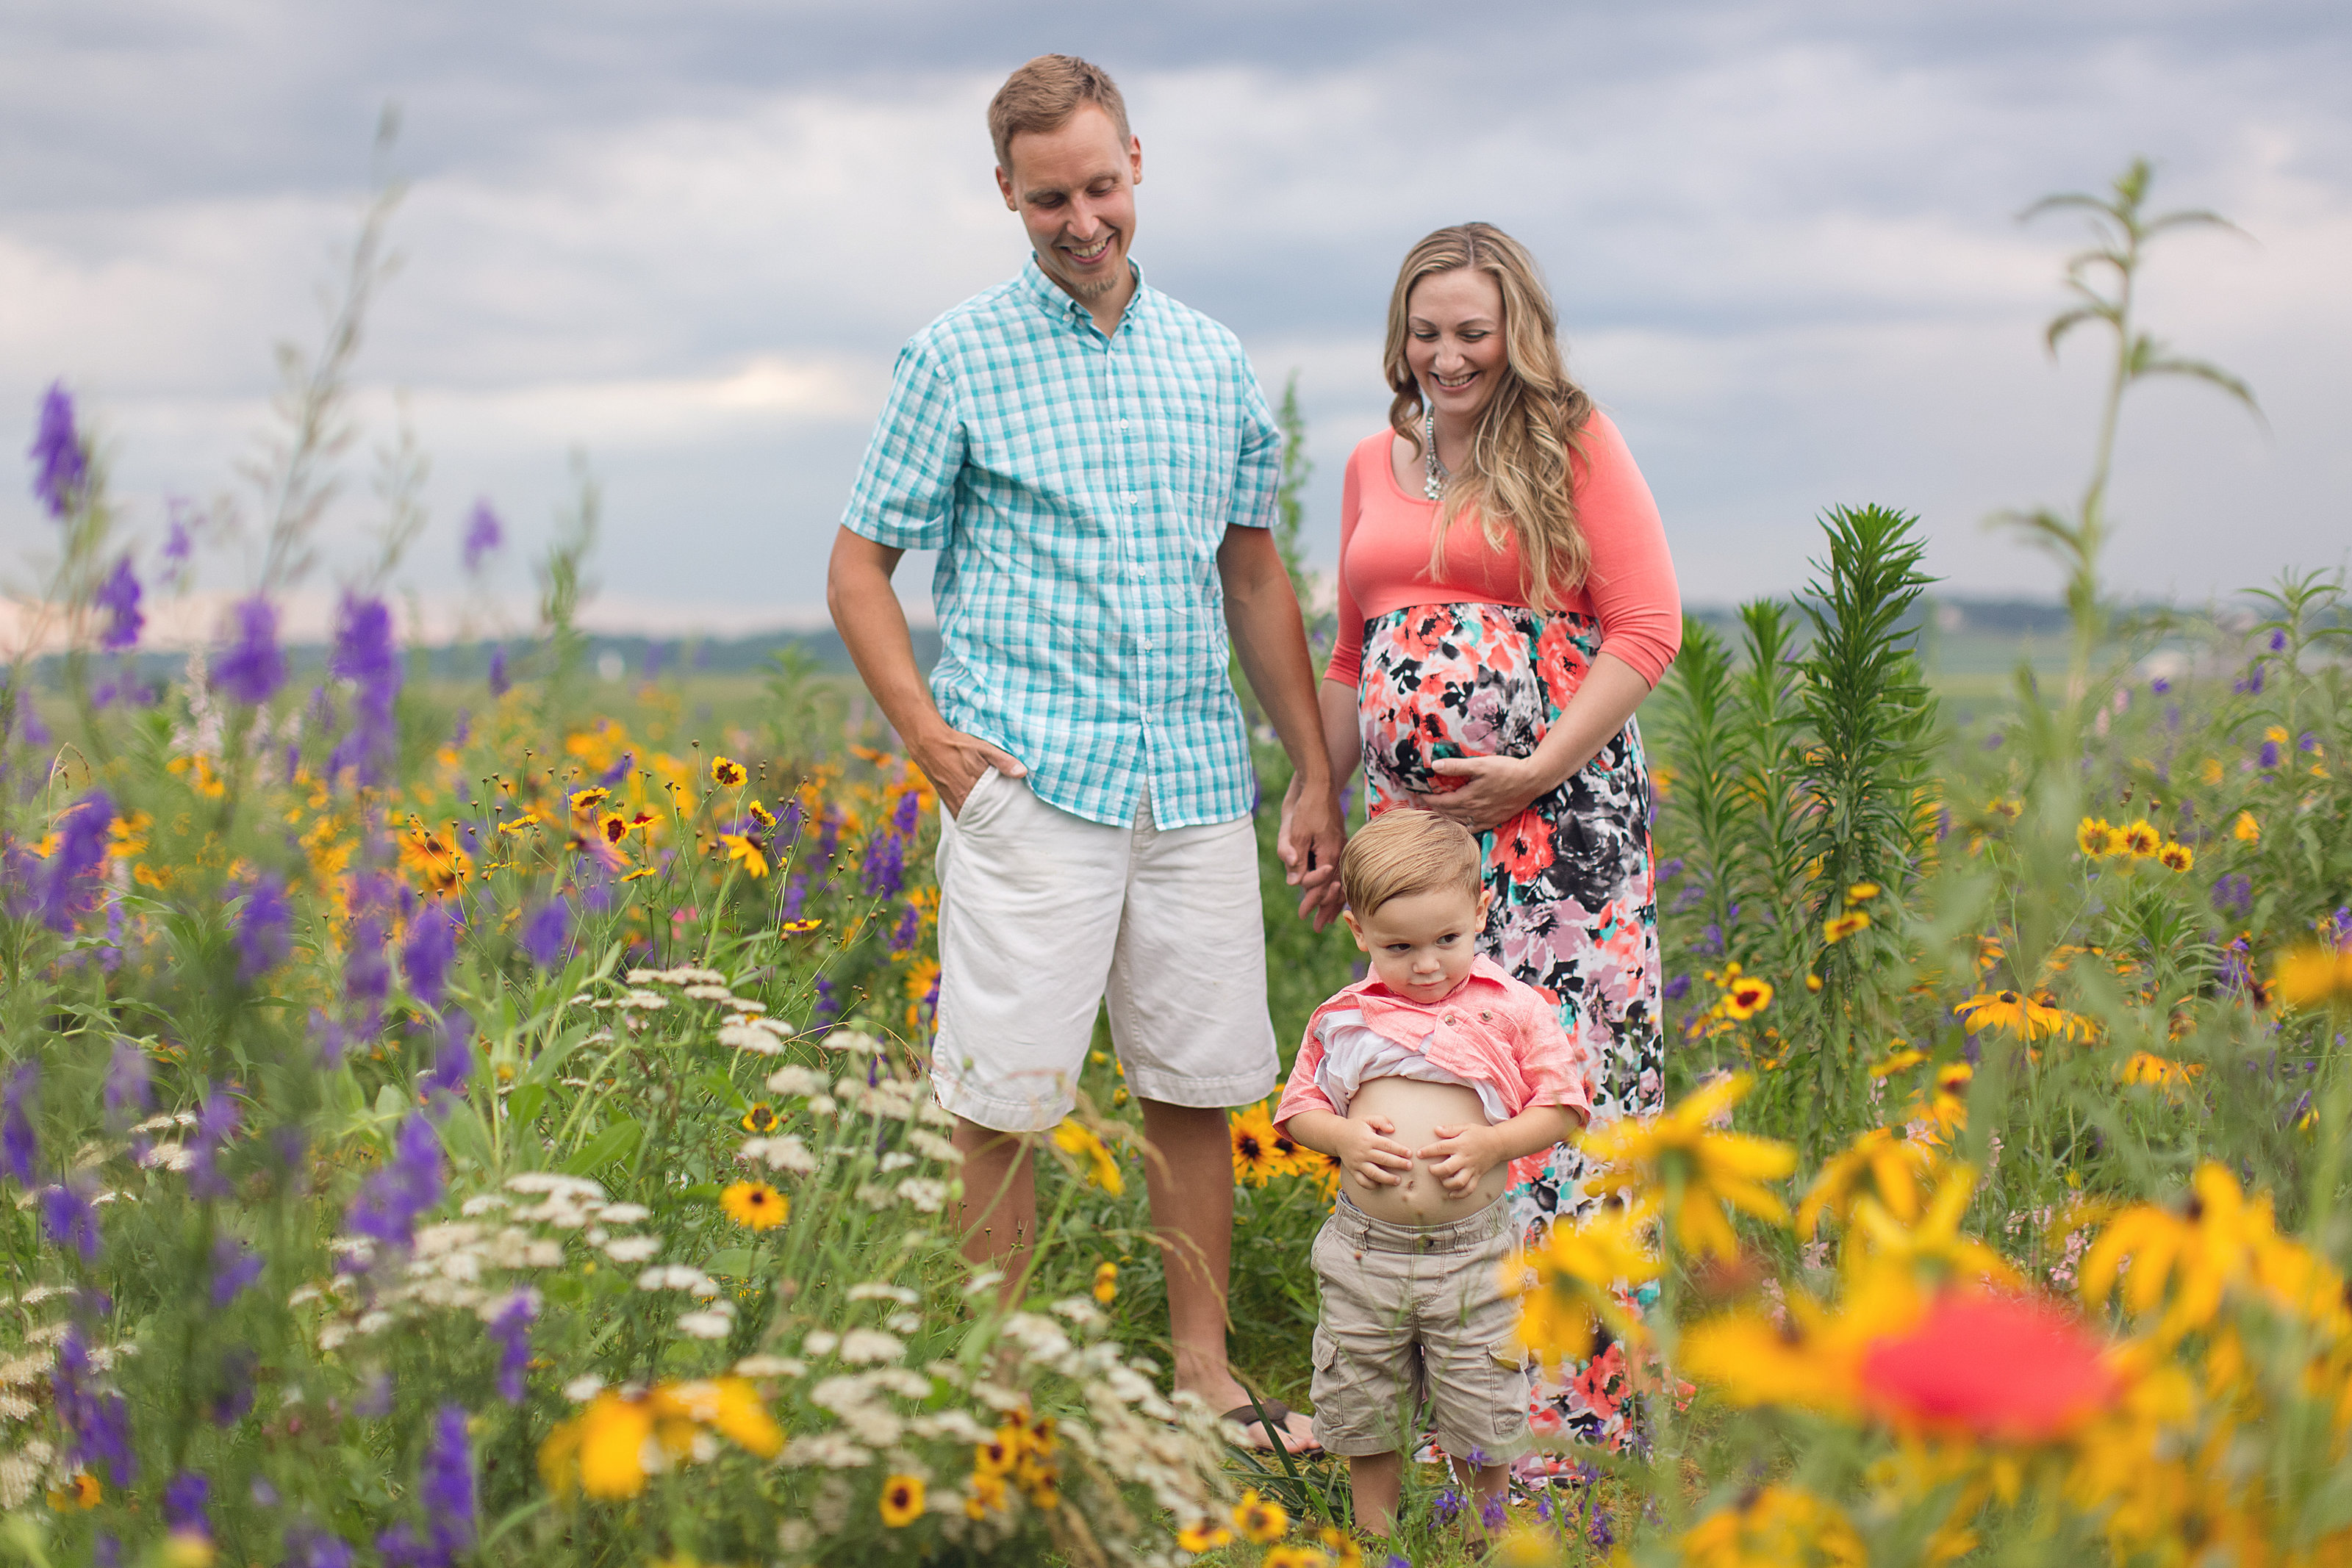 PA family maternity in flower field photo during summer